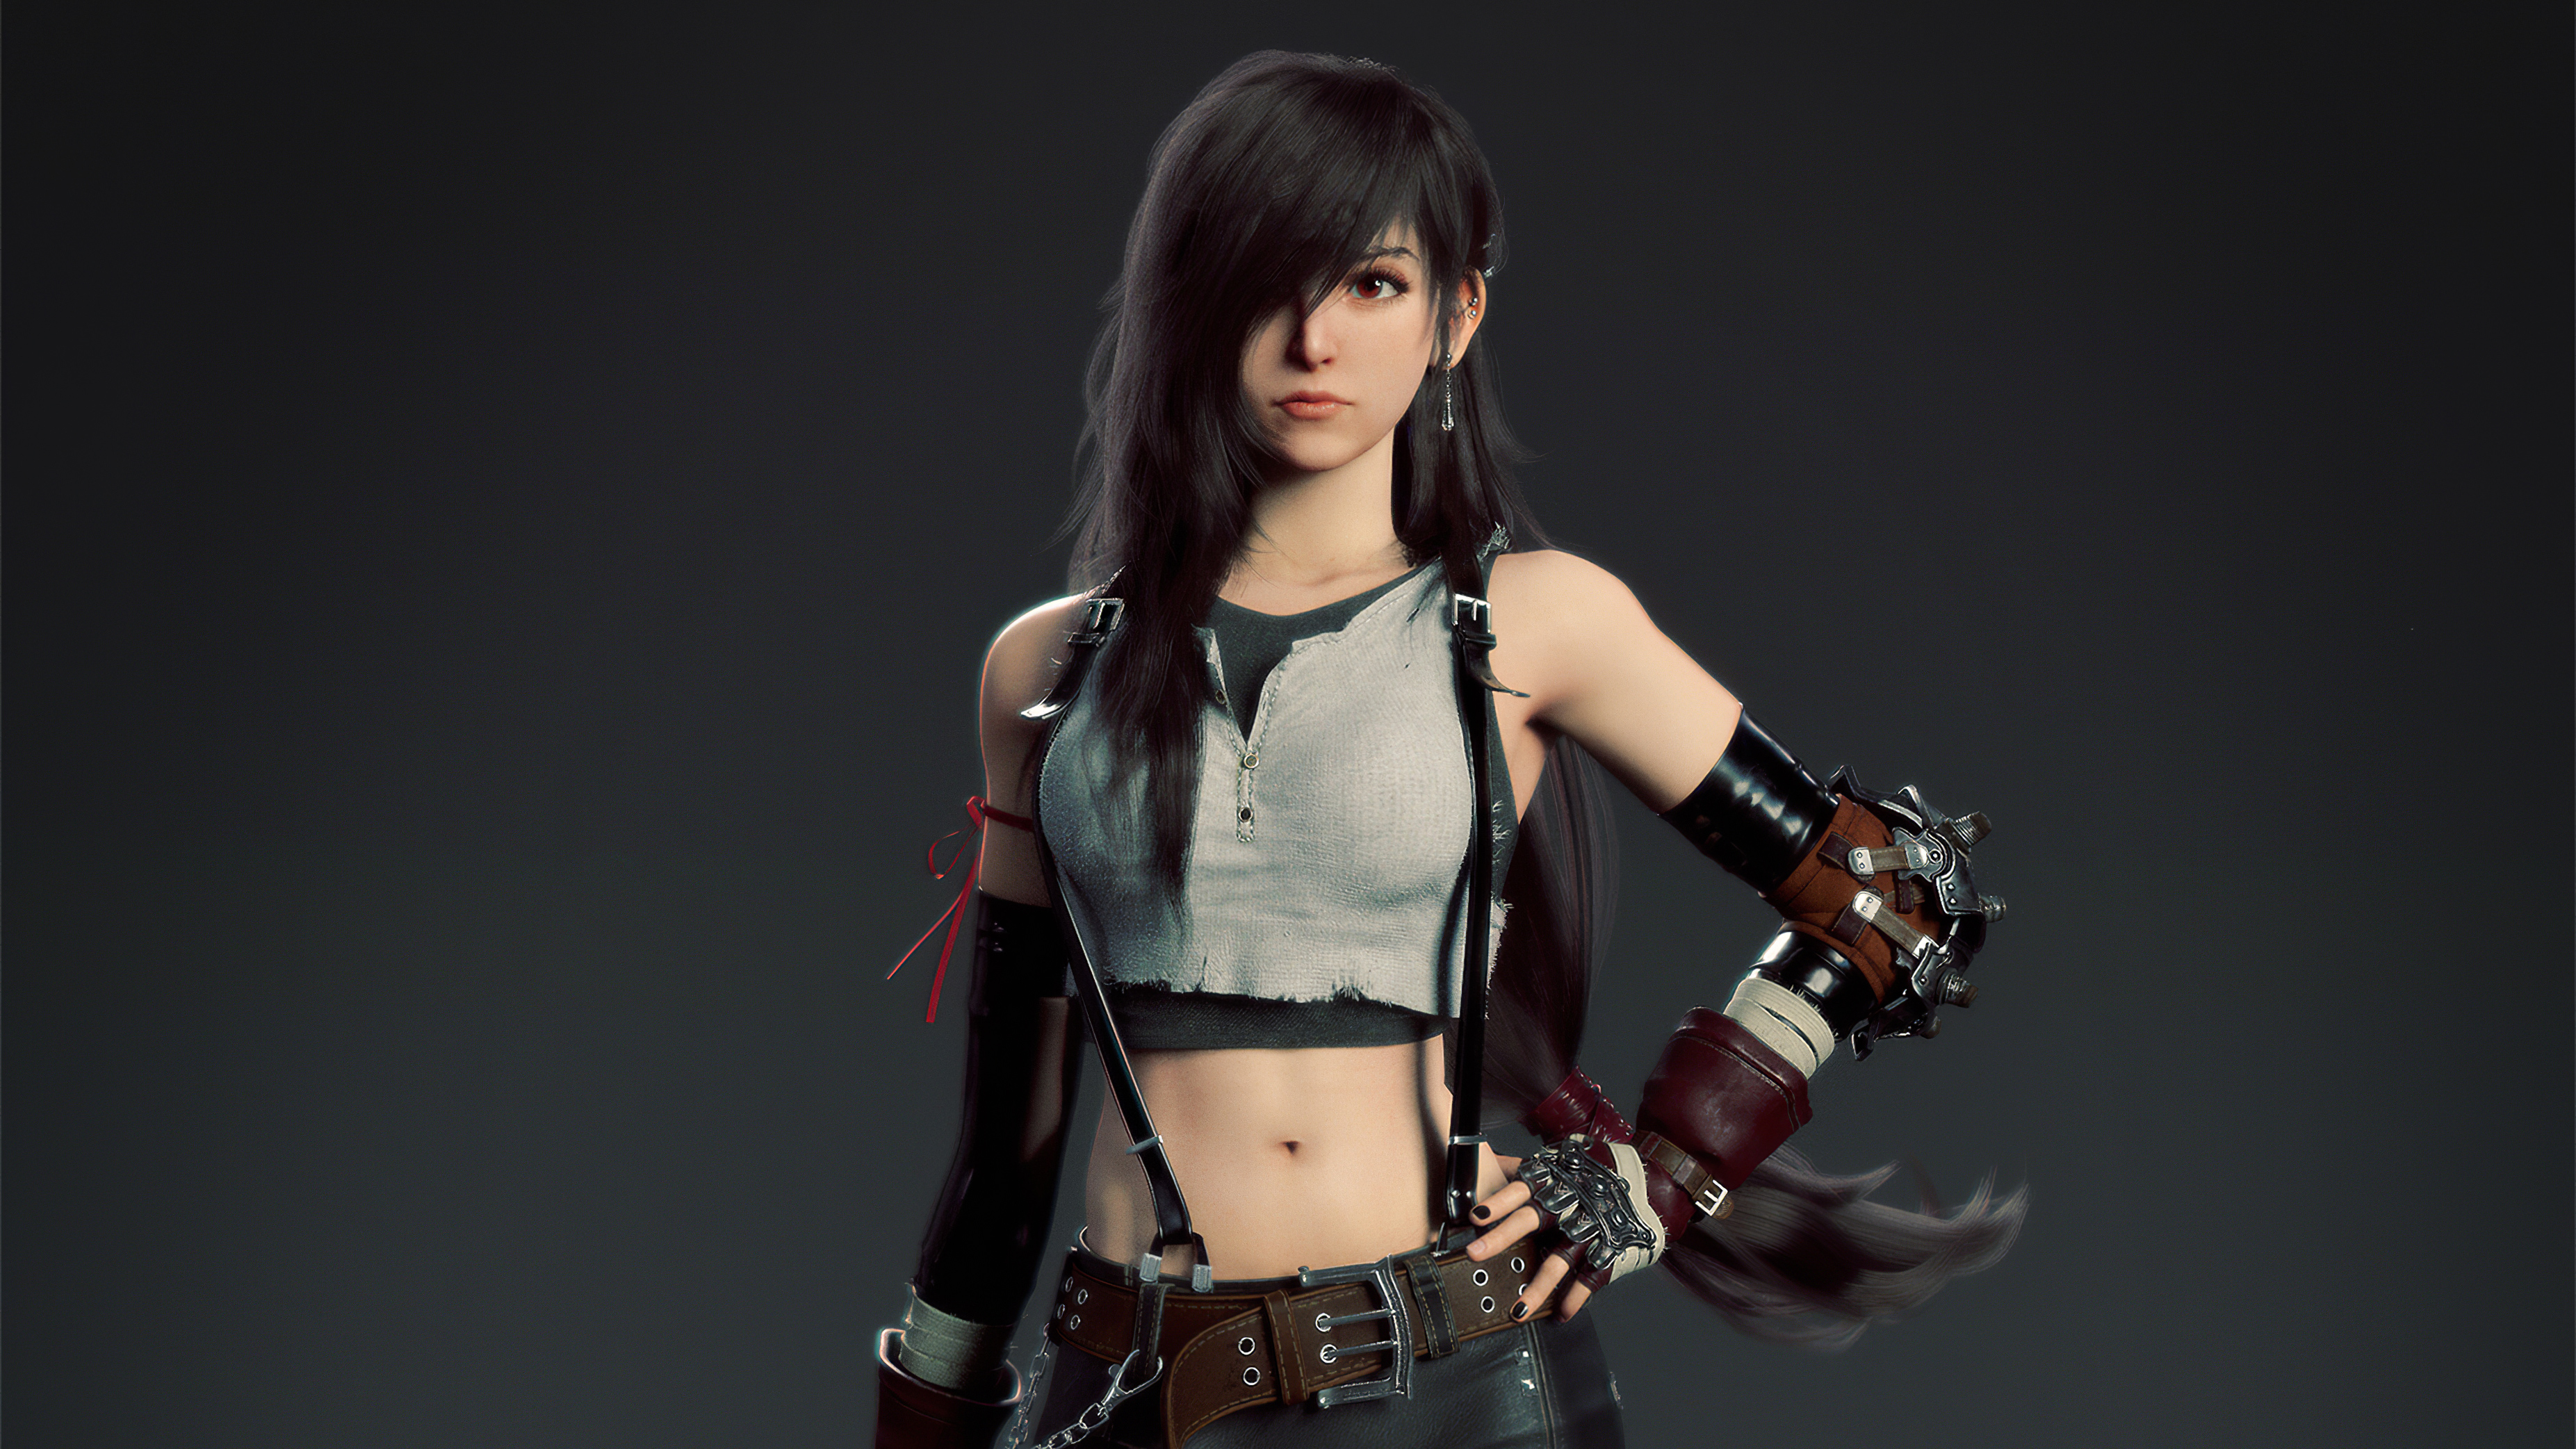 1366x768 Tifa Lockhart Artwork 4k 1366x768 Resolution Hd 4k Wallpapers Images Backgrounds Photos And Pictures